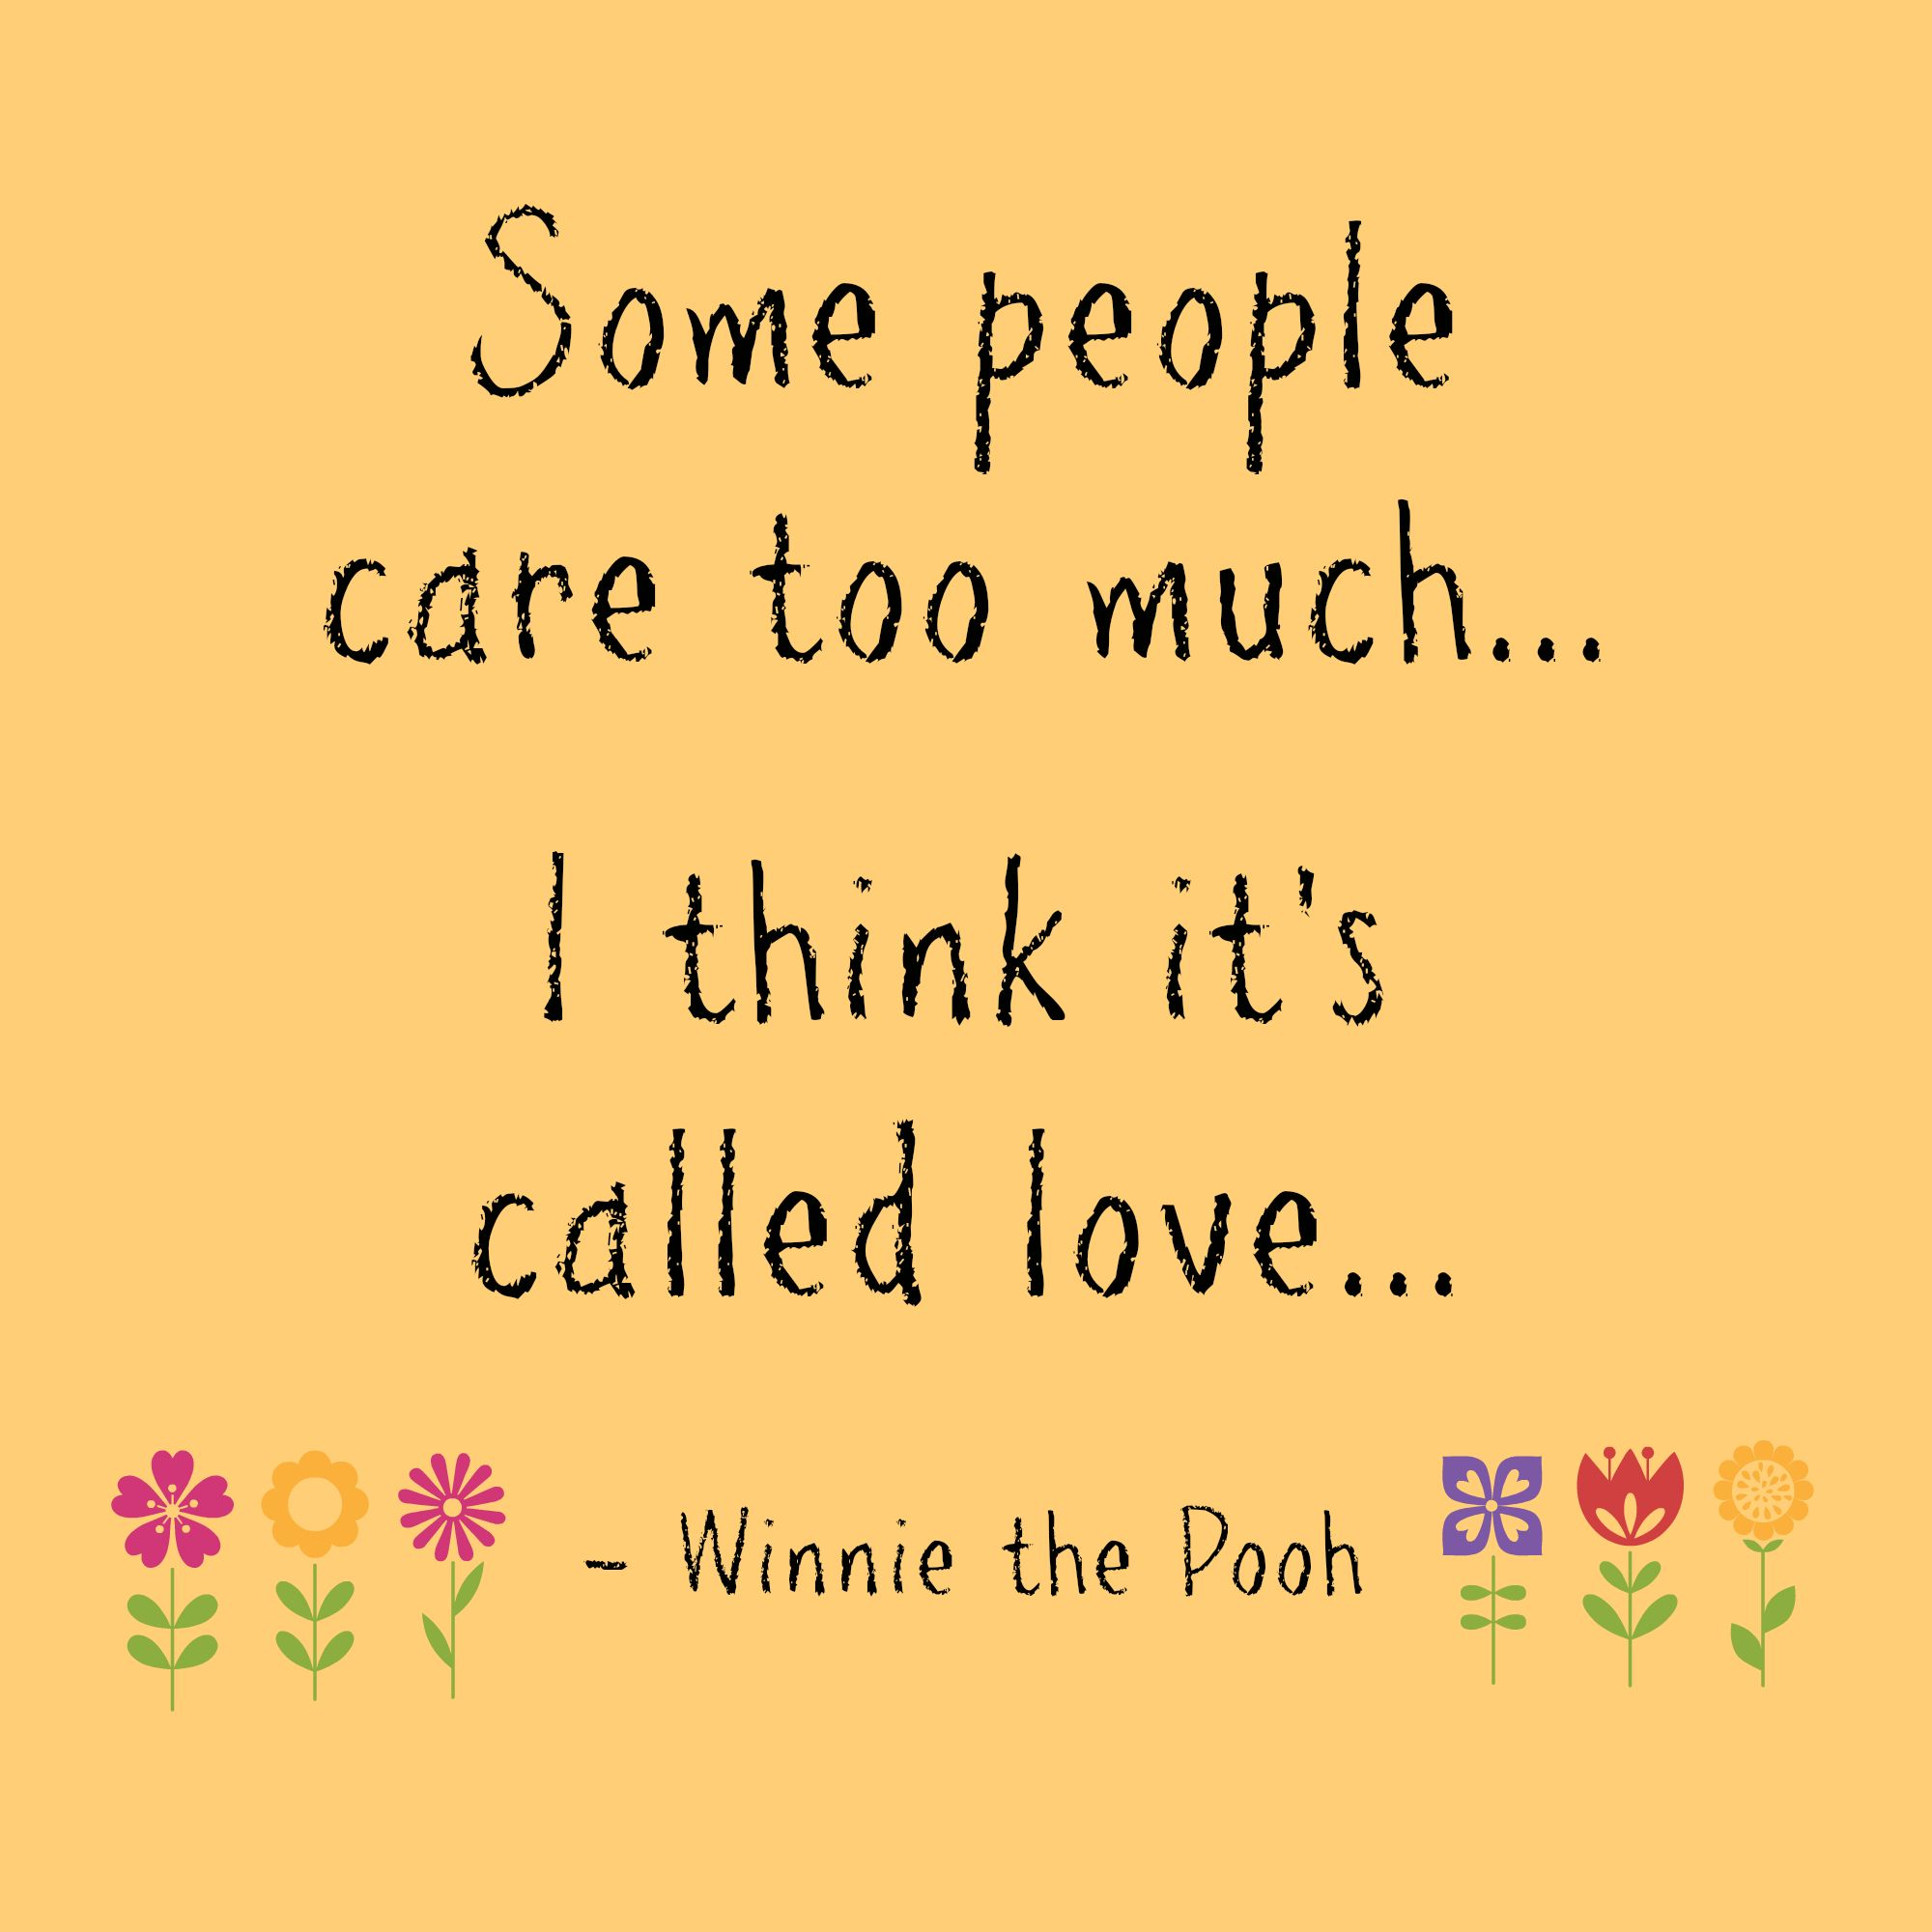 Winnie The Pooh Quote About Friendship Quotesgram Winnie The Pooh Quotes About Love 1000 Images About